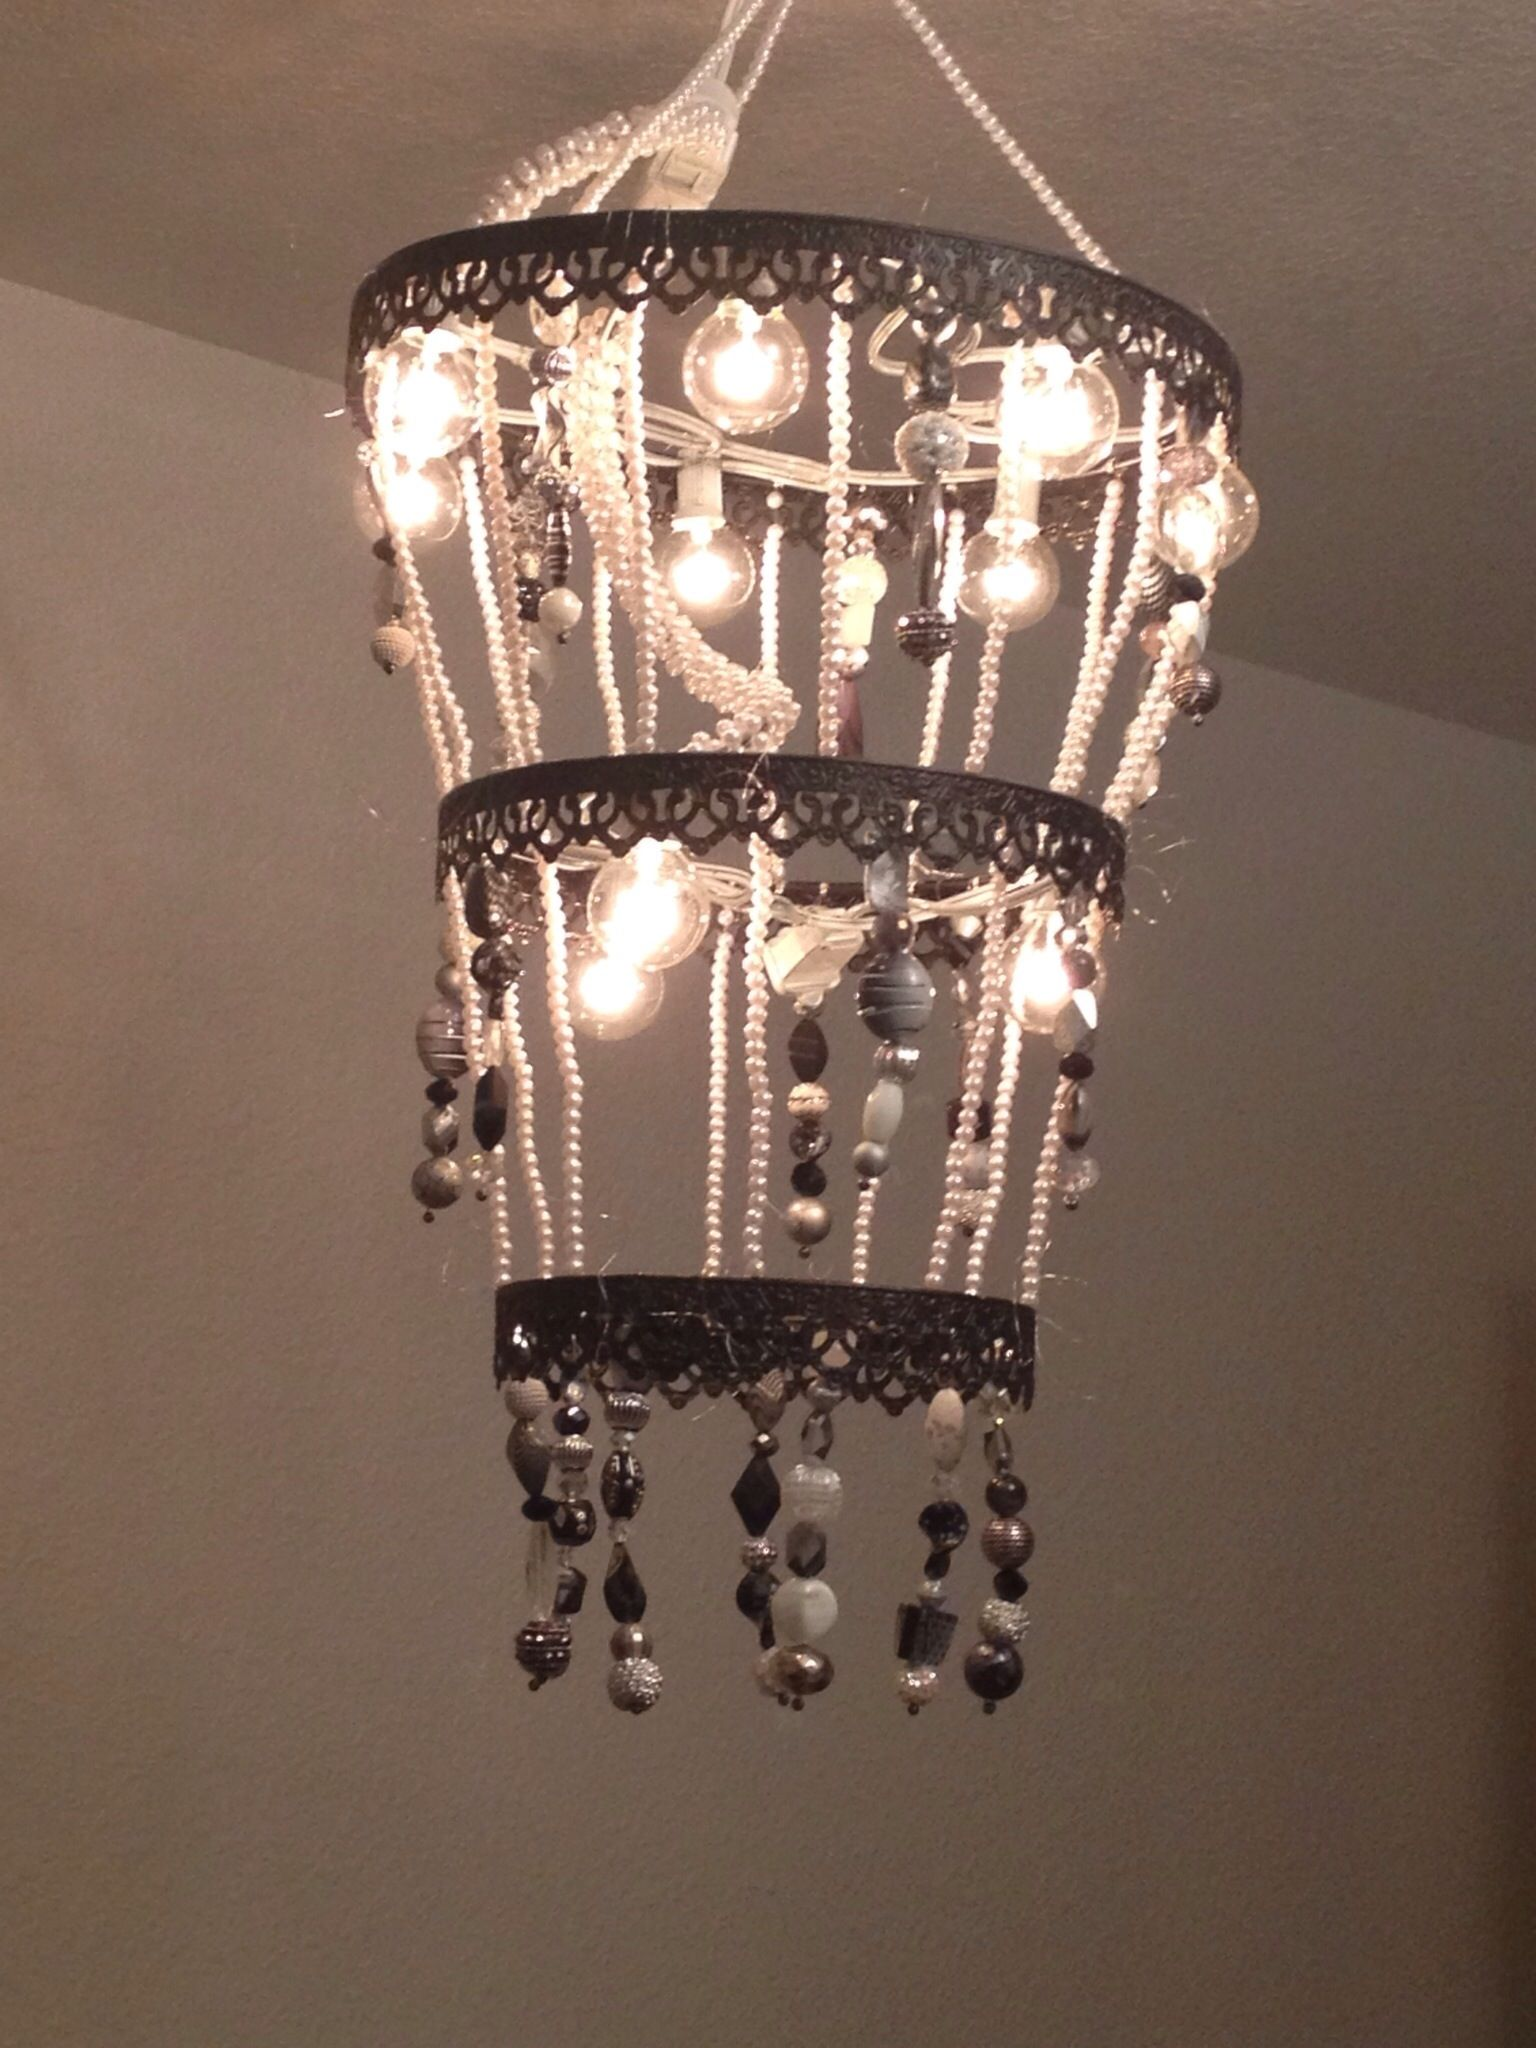 Beautiful homemade chandelier made with metal rings 22 gauge wire beautiful homemade chandelier made with metal rings 22 gauge wire with beads small globe lights amazing look and incredible ambiance aloadofball Gallery